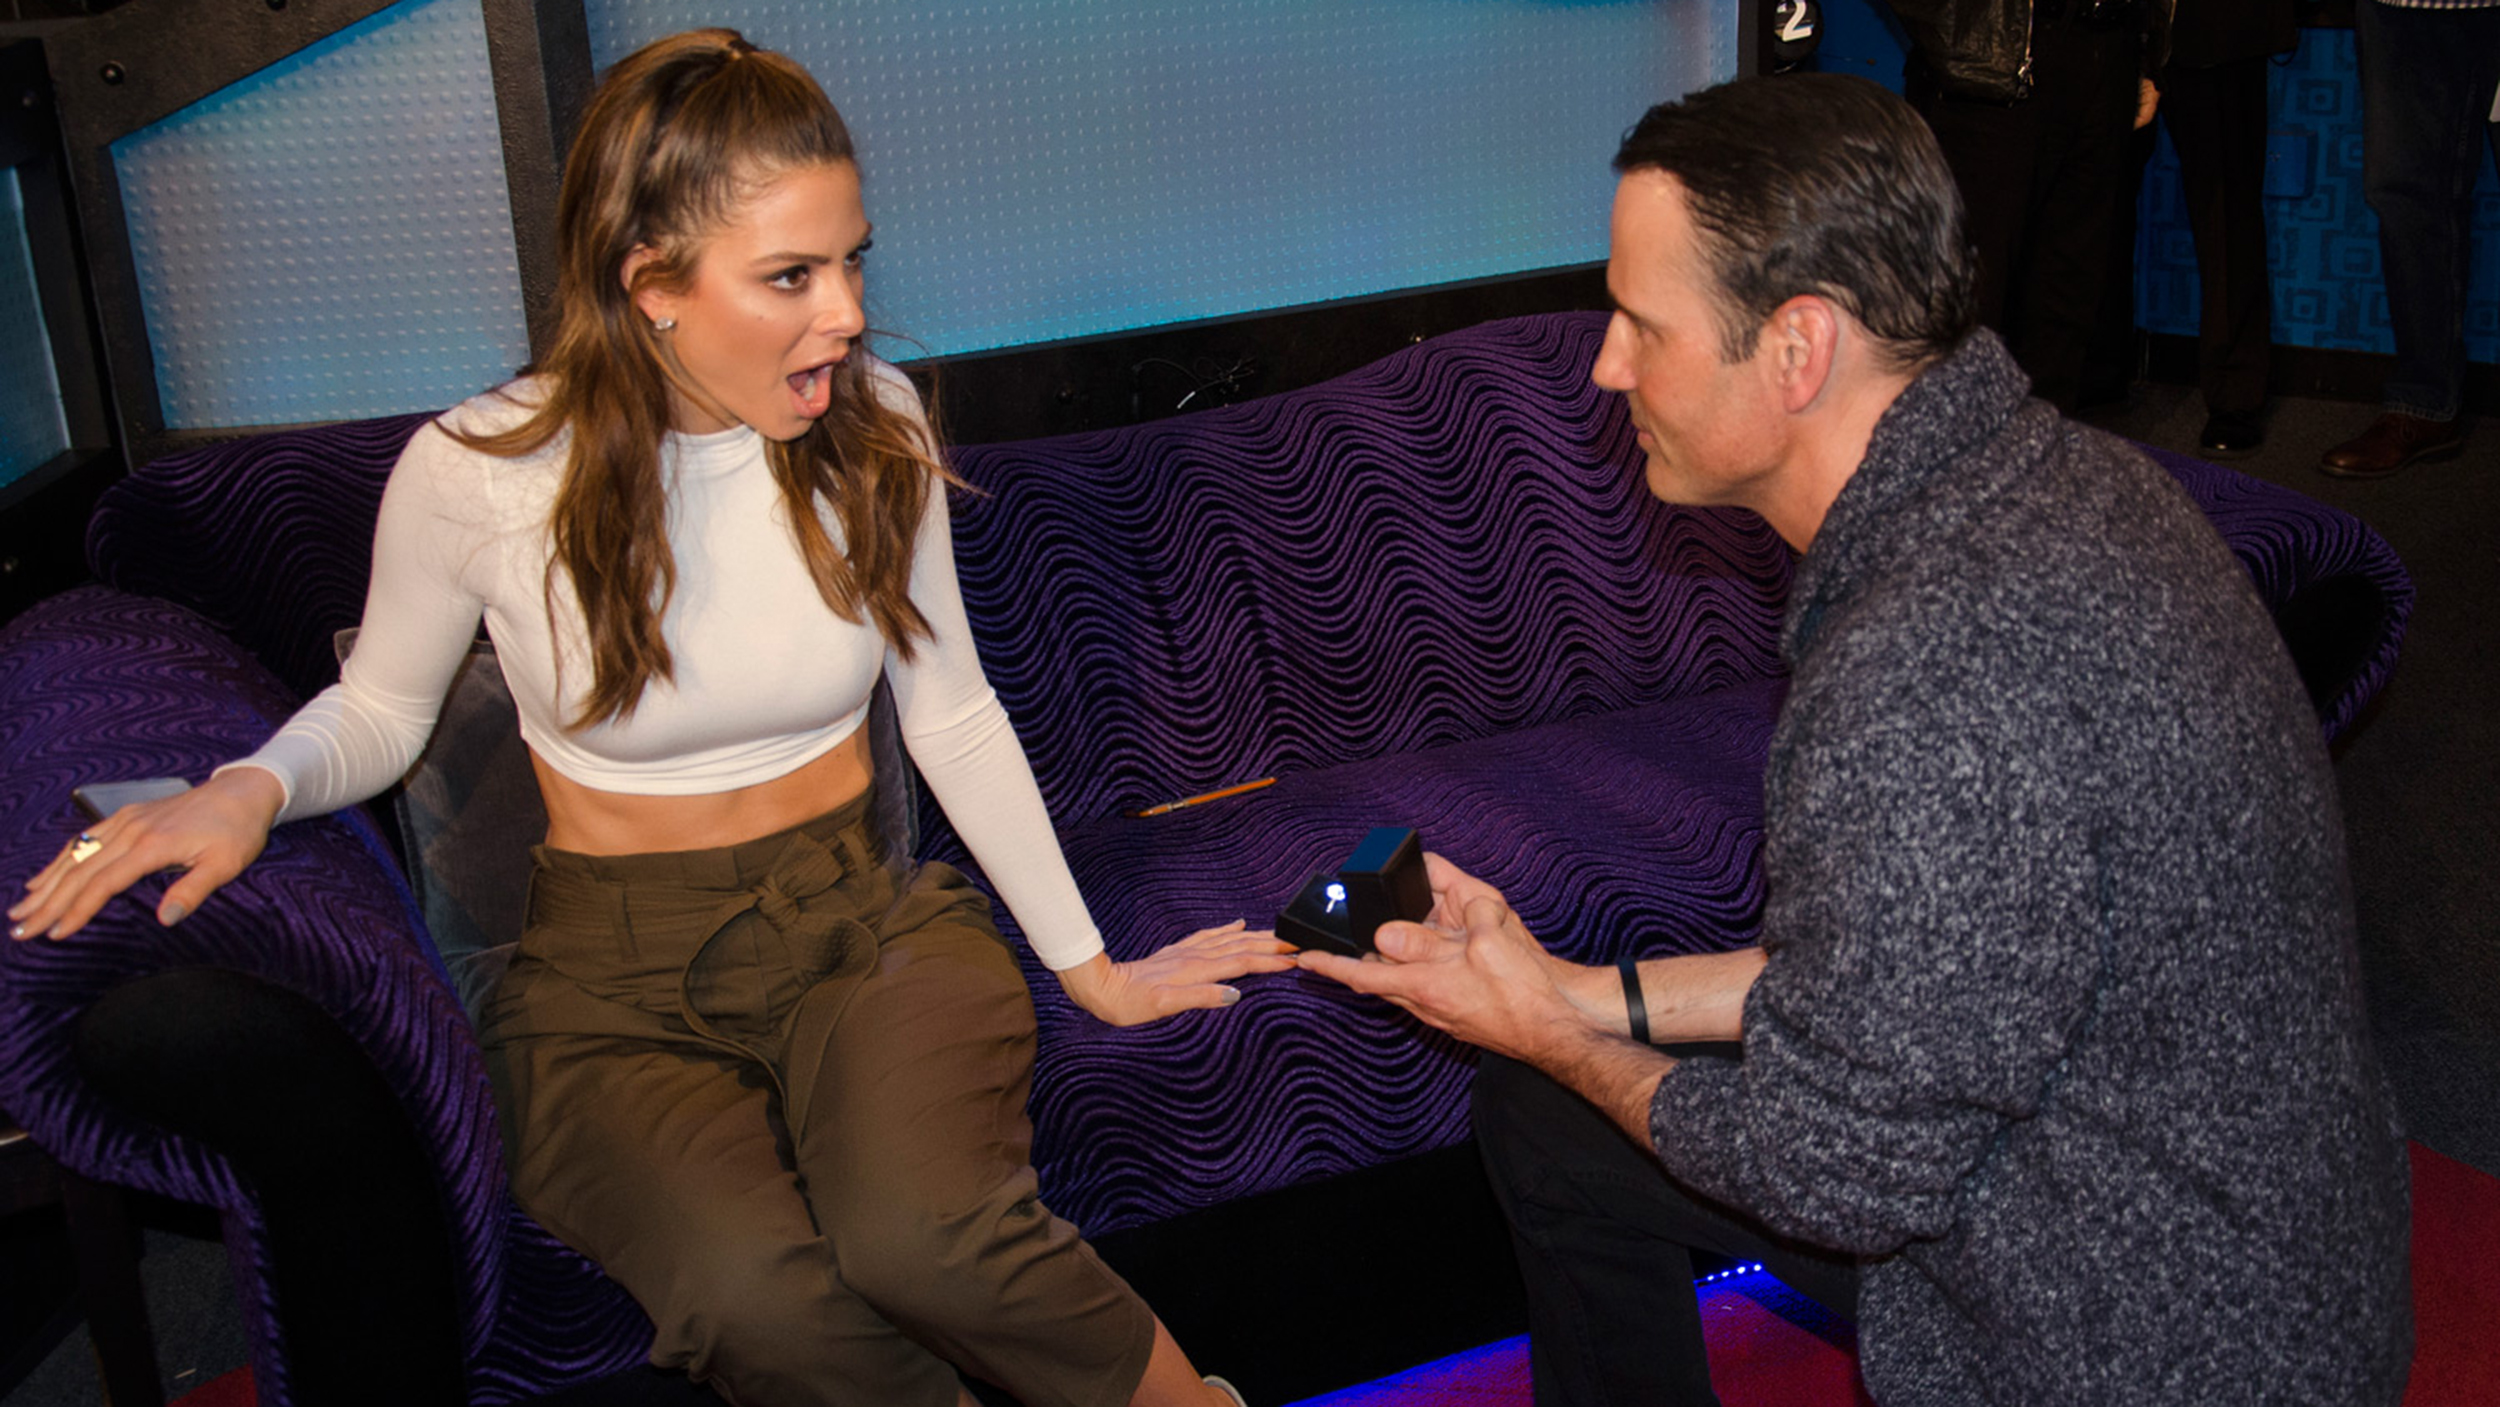 Maria Menounos, Keven Undergaro get engaged on Howard